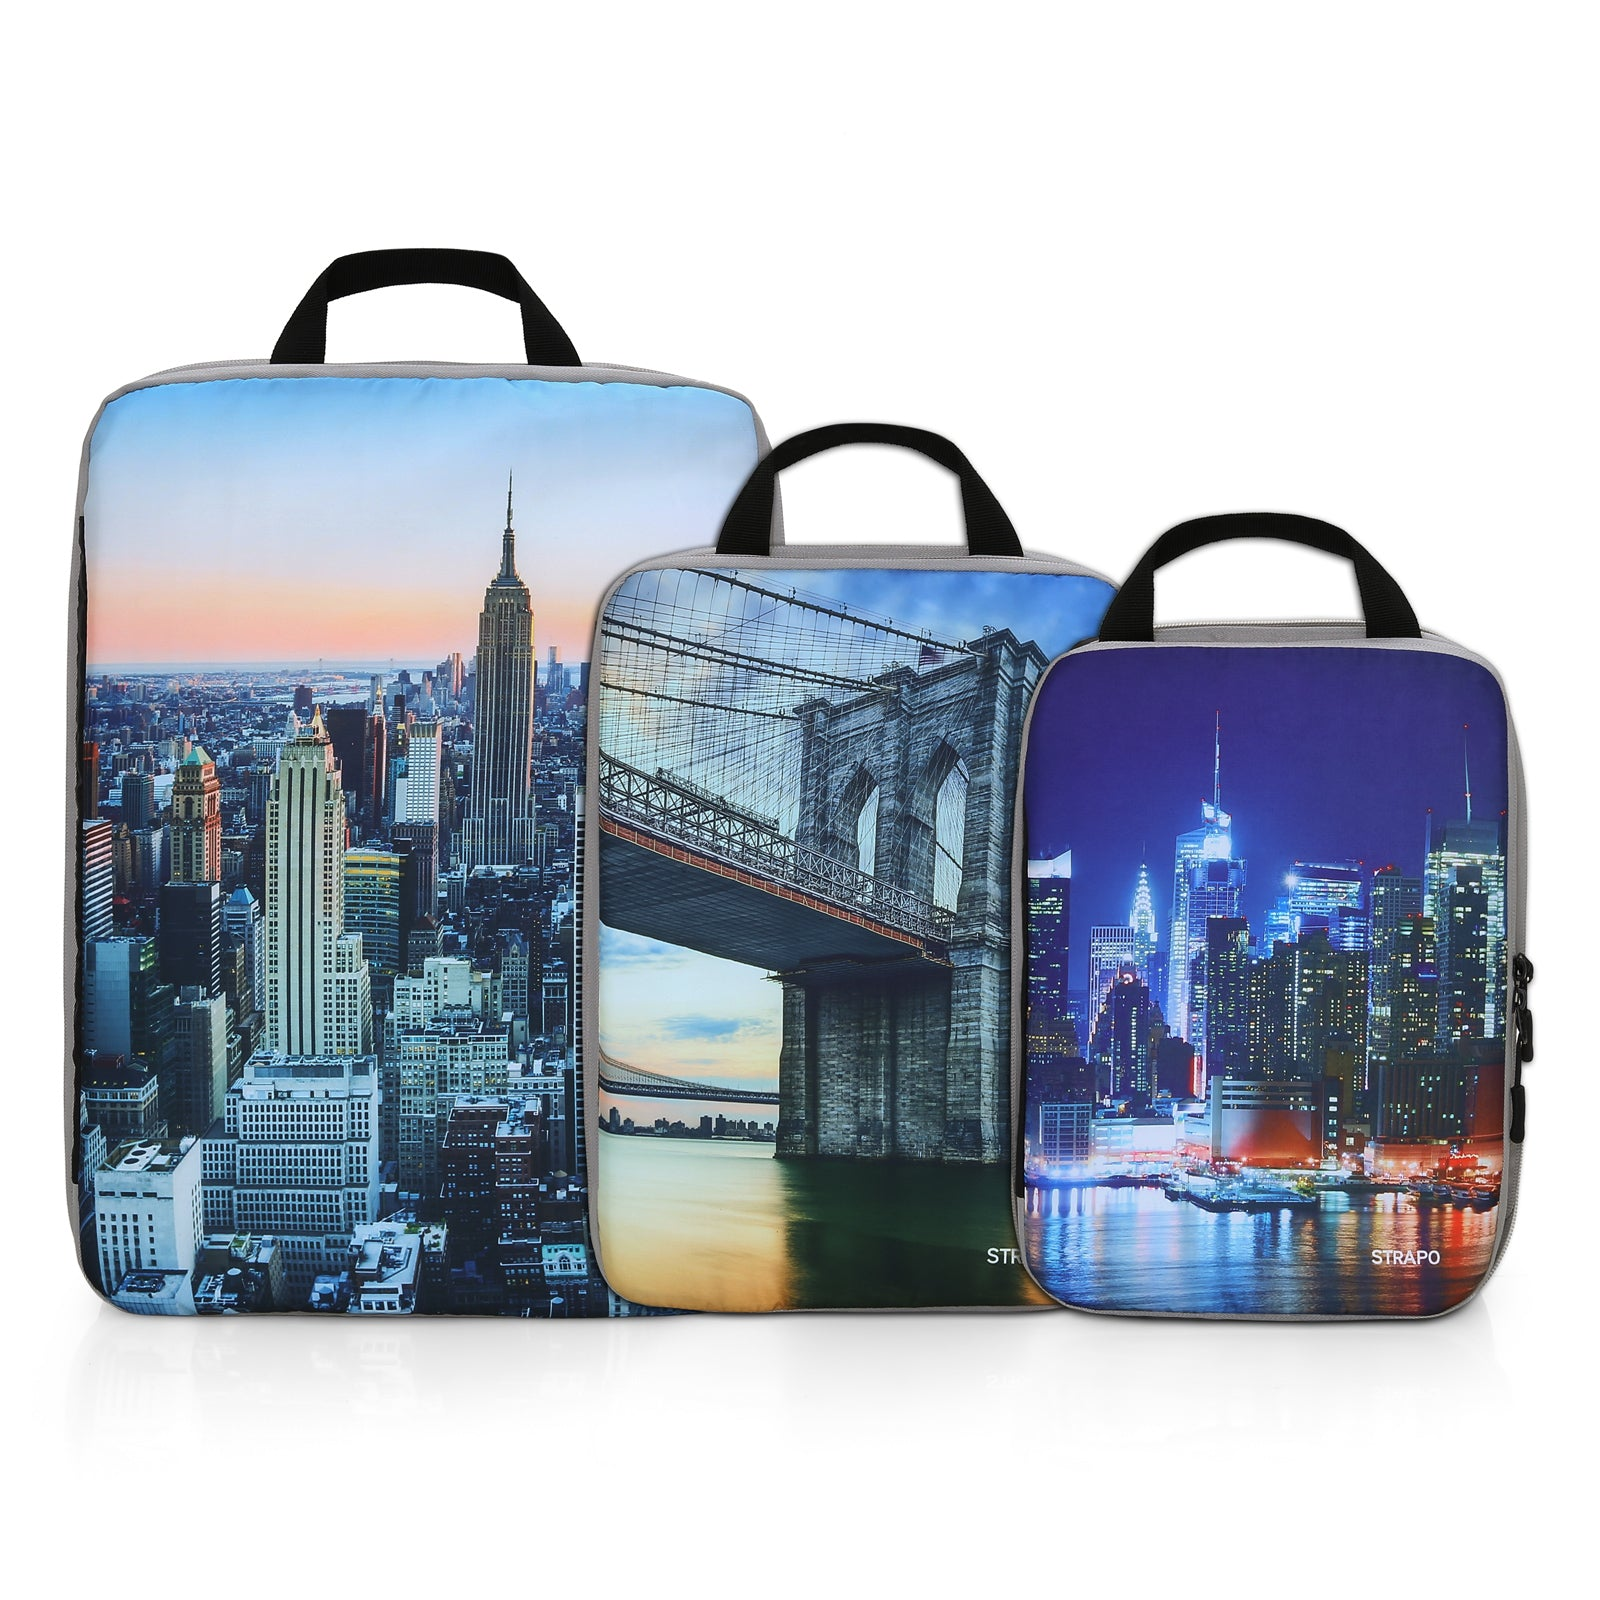 e3af0615d ... Strapo Packing Cube Set – 3 Sizes Small, Medium and Large – New York  Design ...